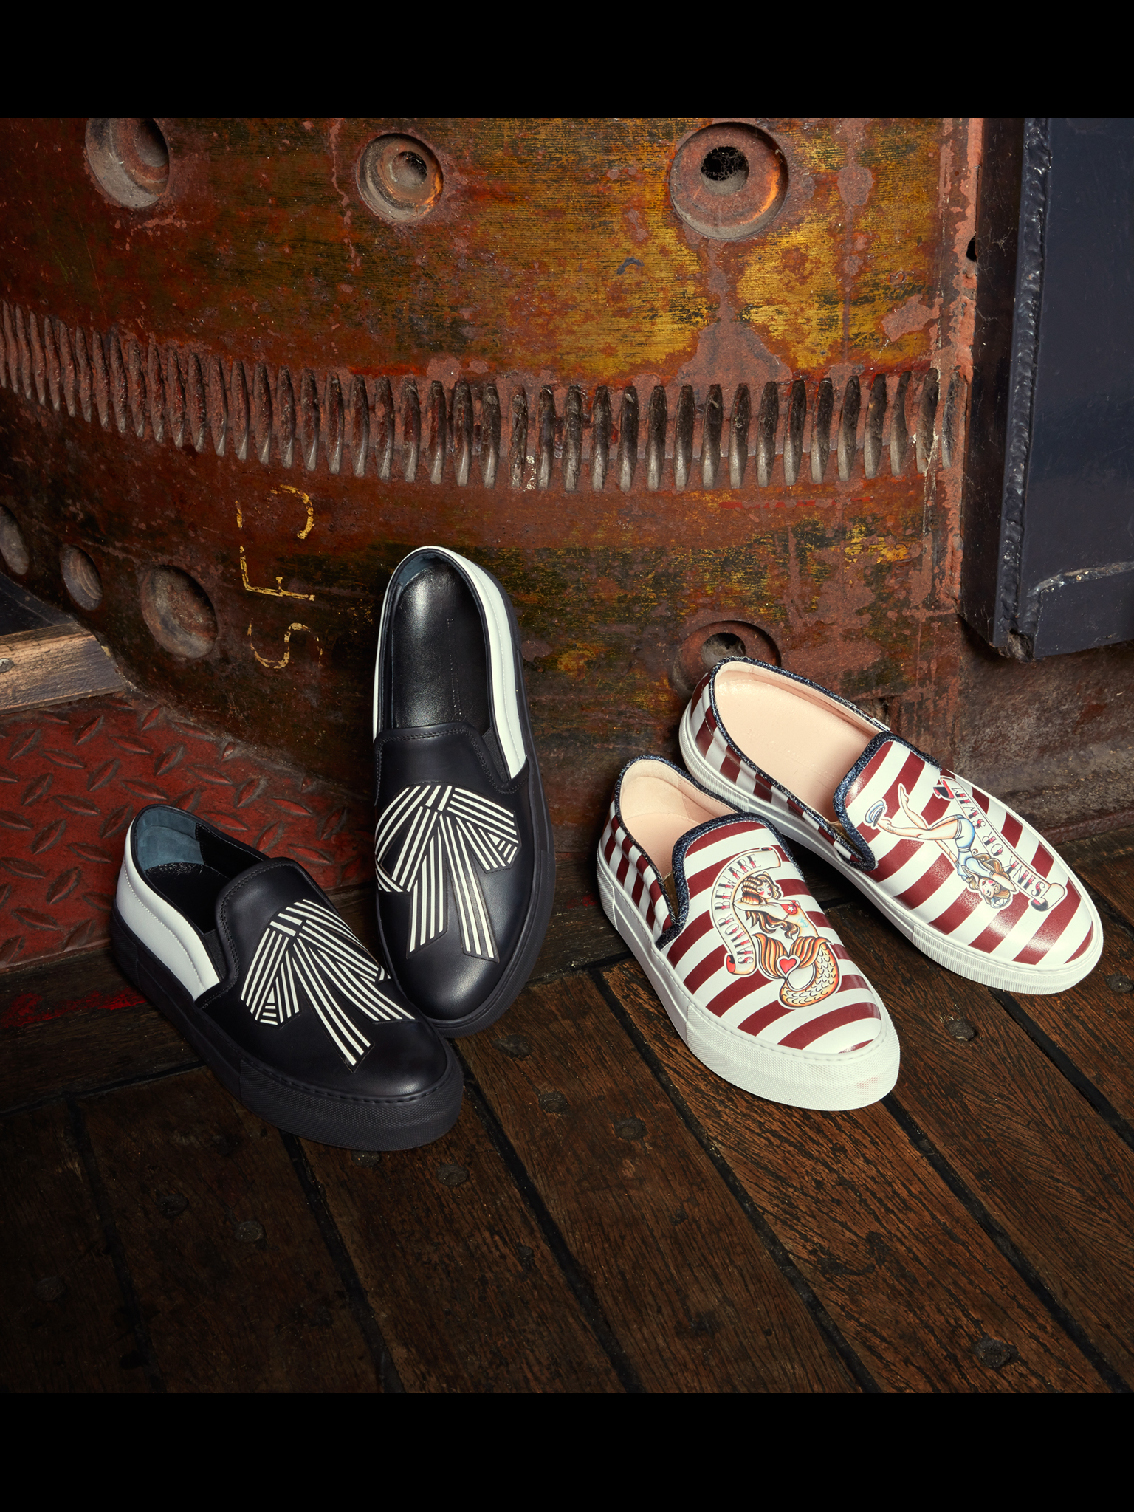 FW16_TOMMYHILFIGERCOLLECTION_Accessories2